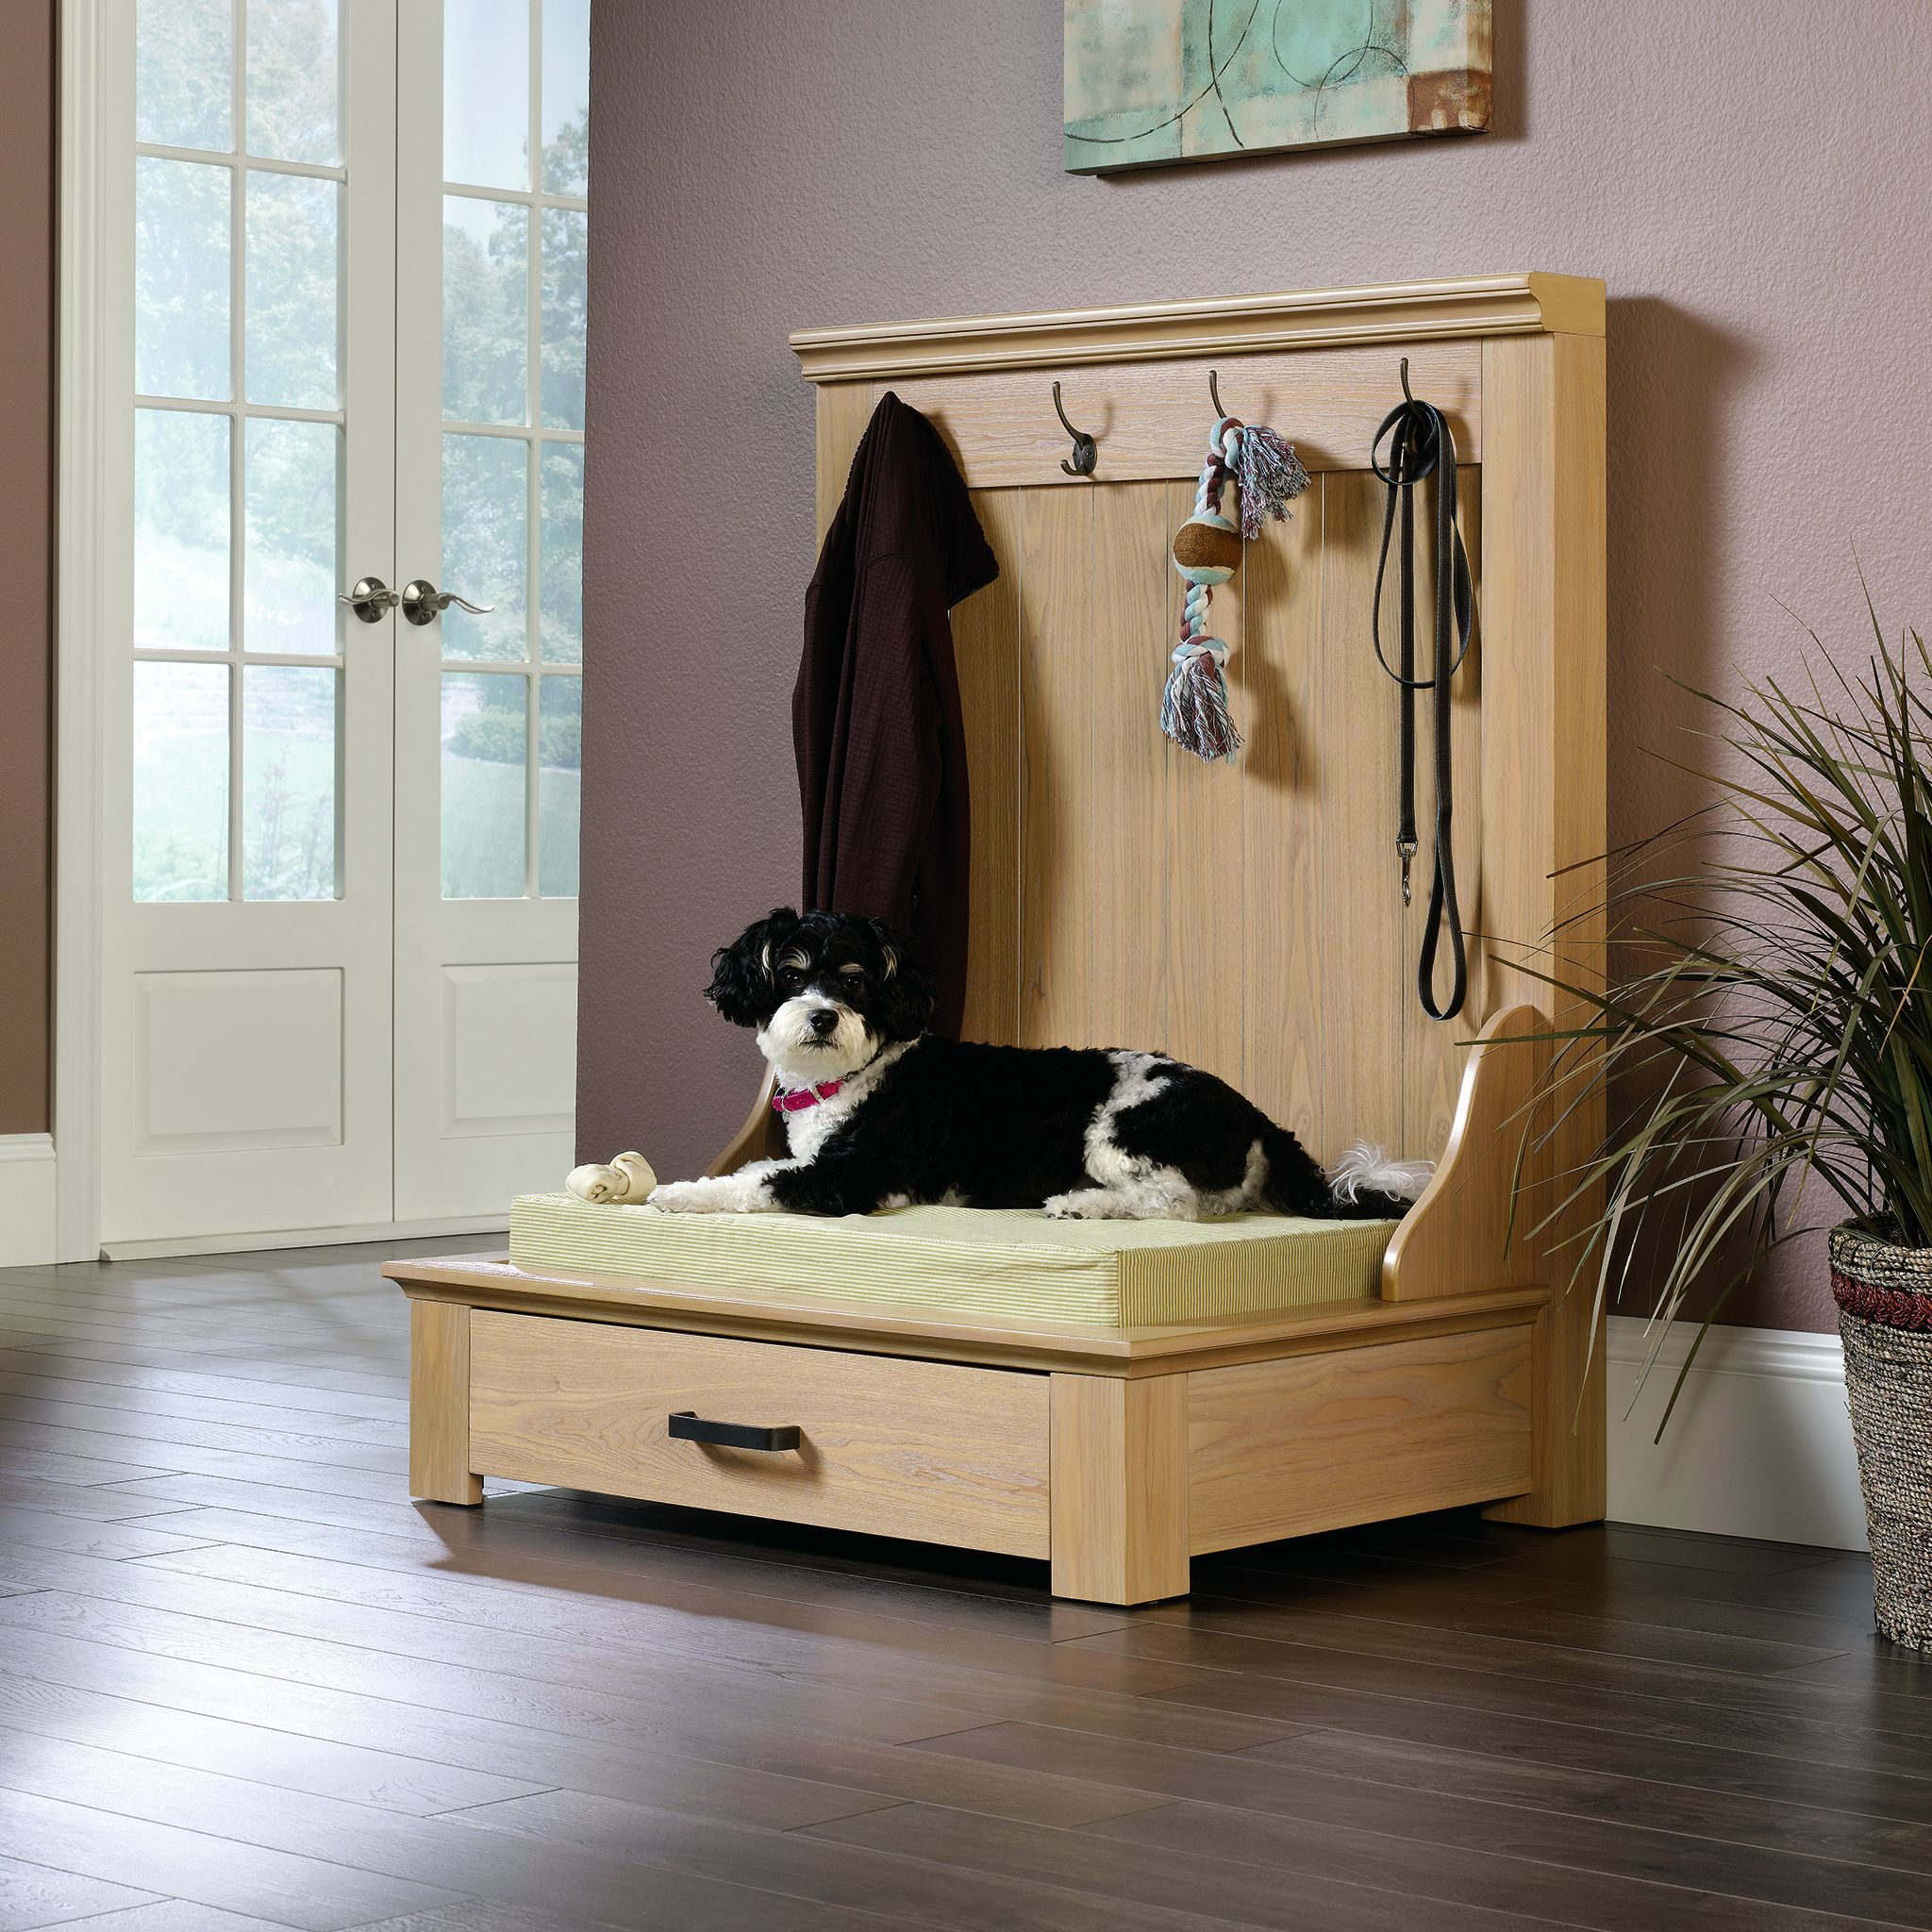 Bring Backdoor Clutter Under Control With The Entryway Dog Bed From Sauder Www